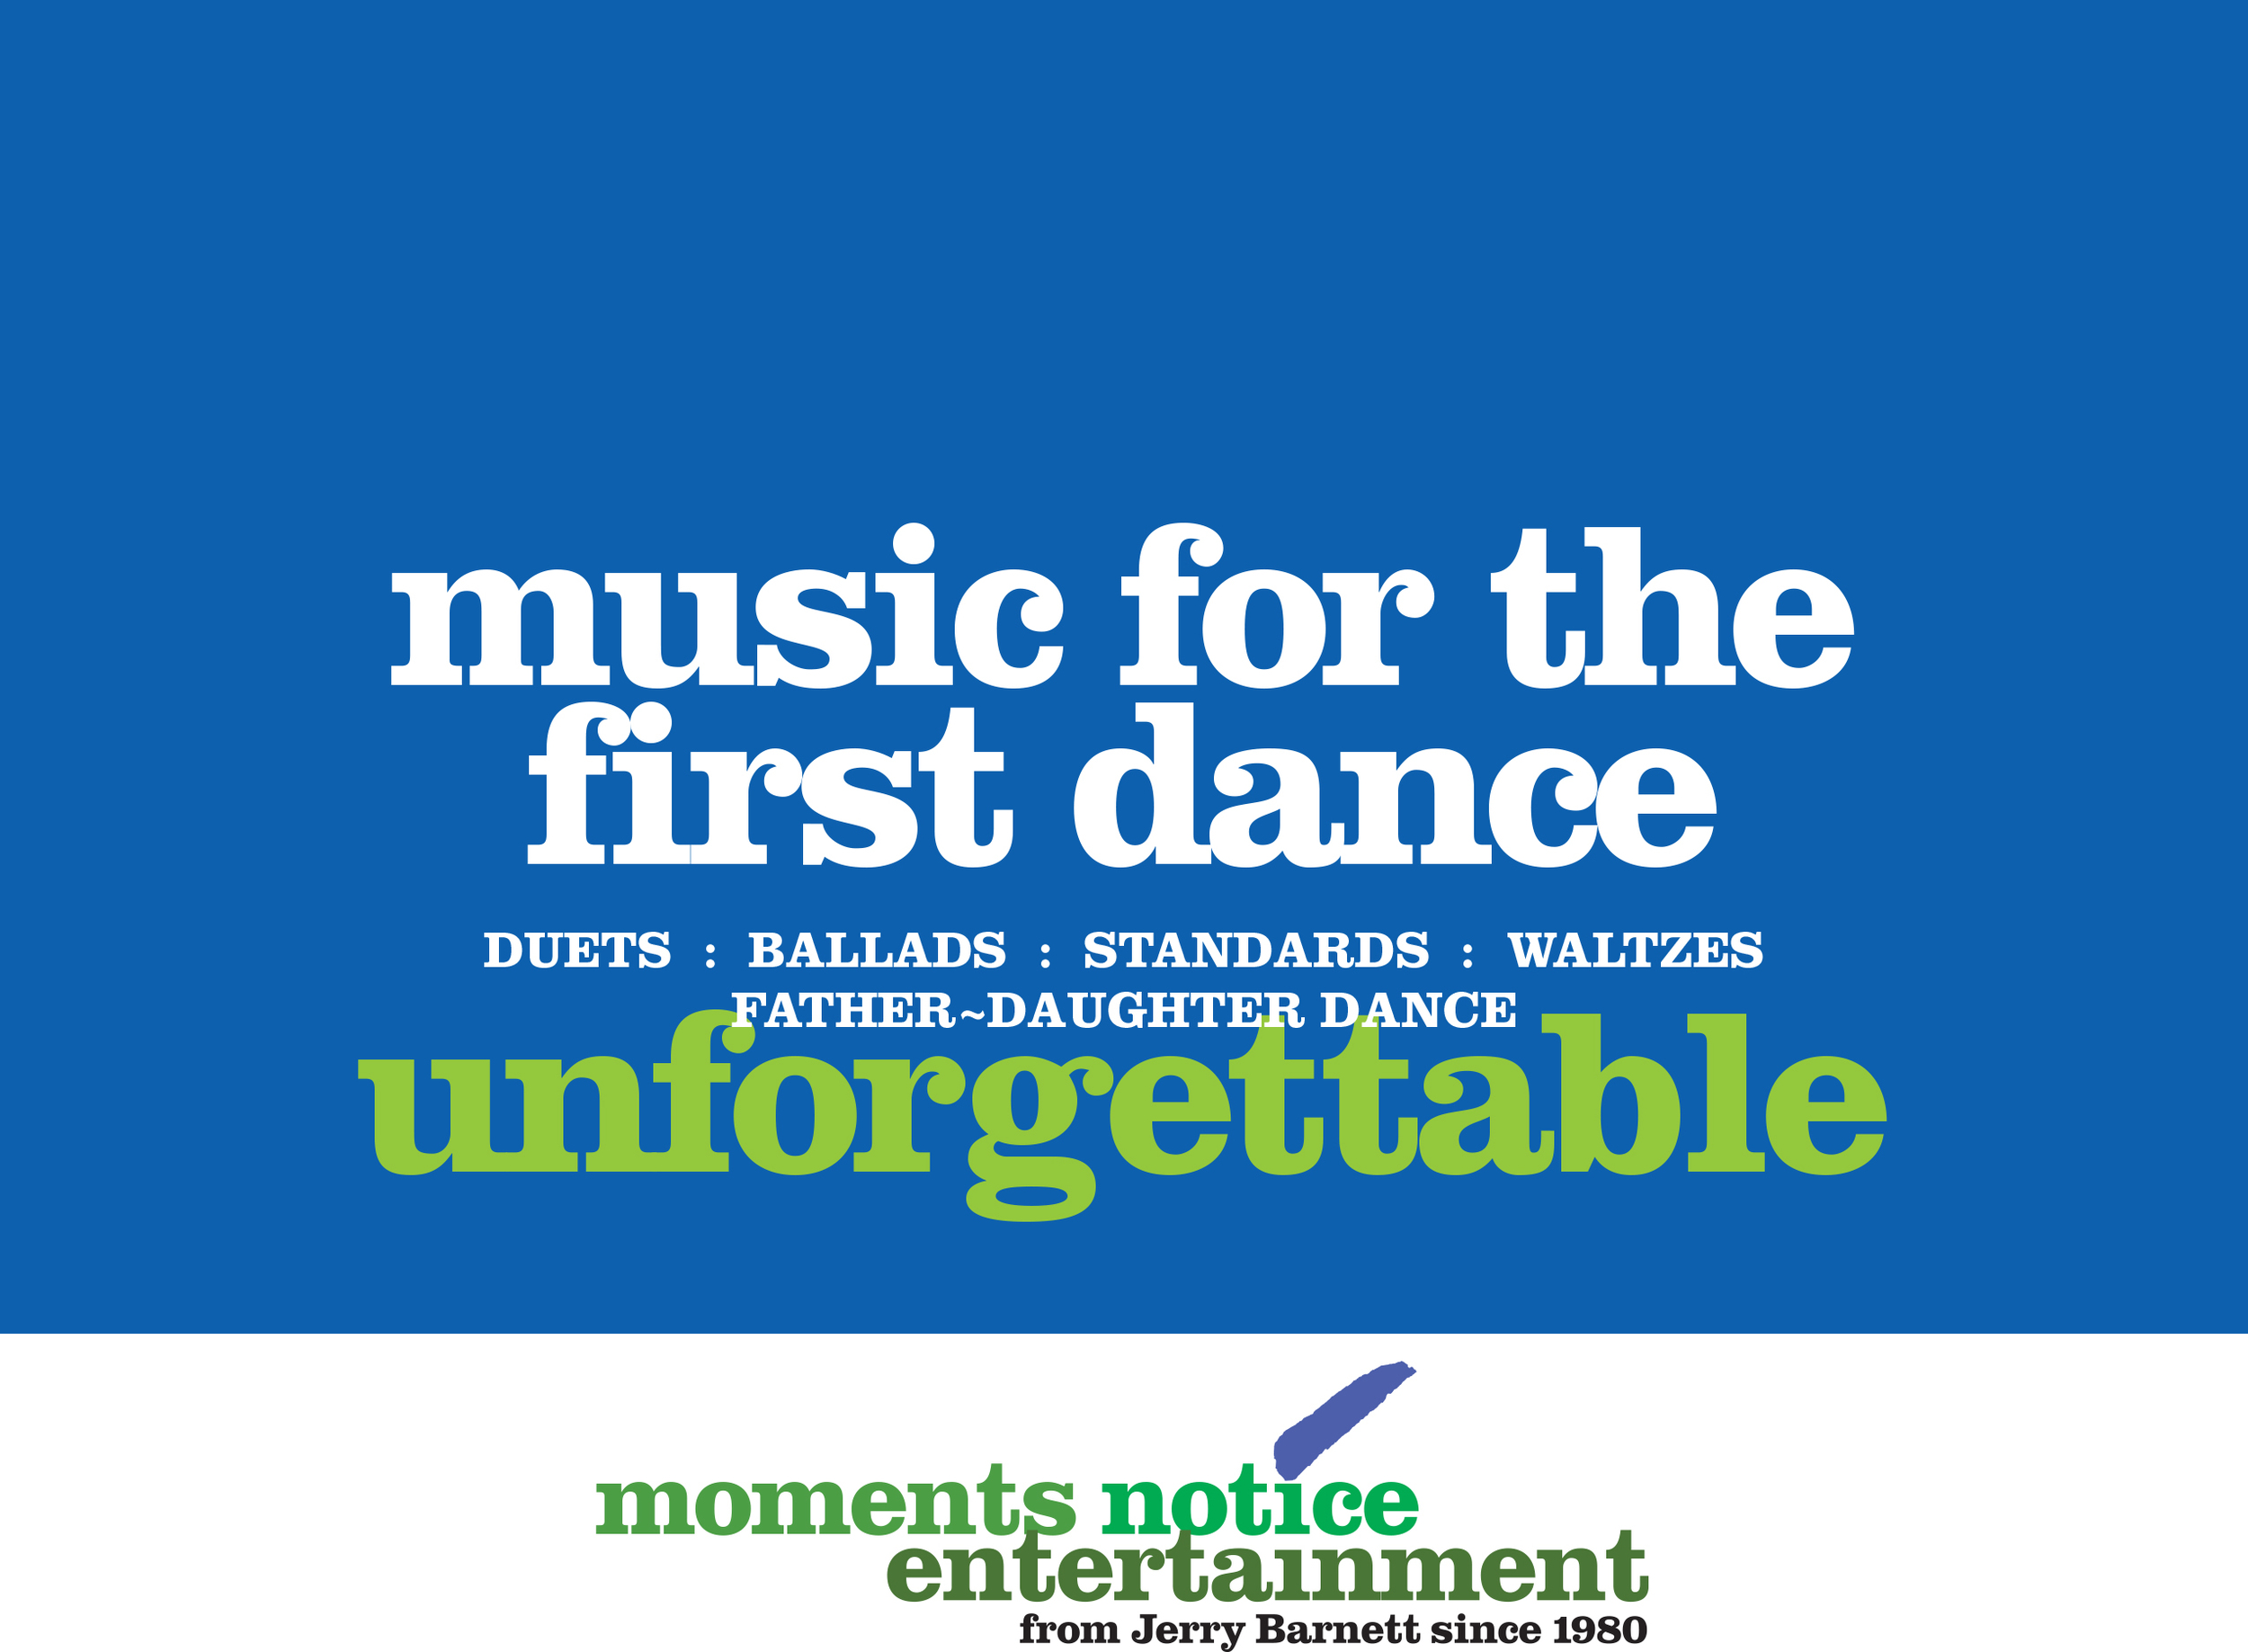 Download music selections for the first dance